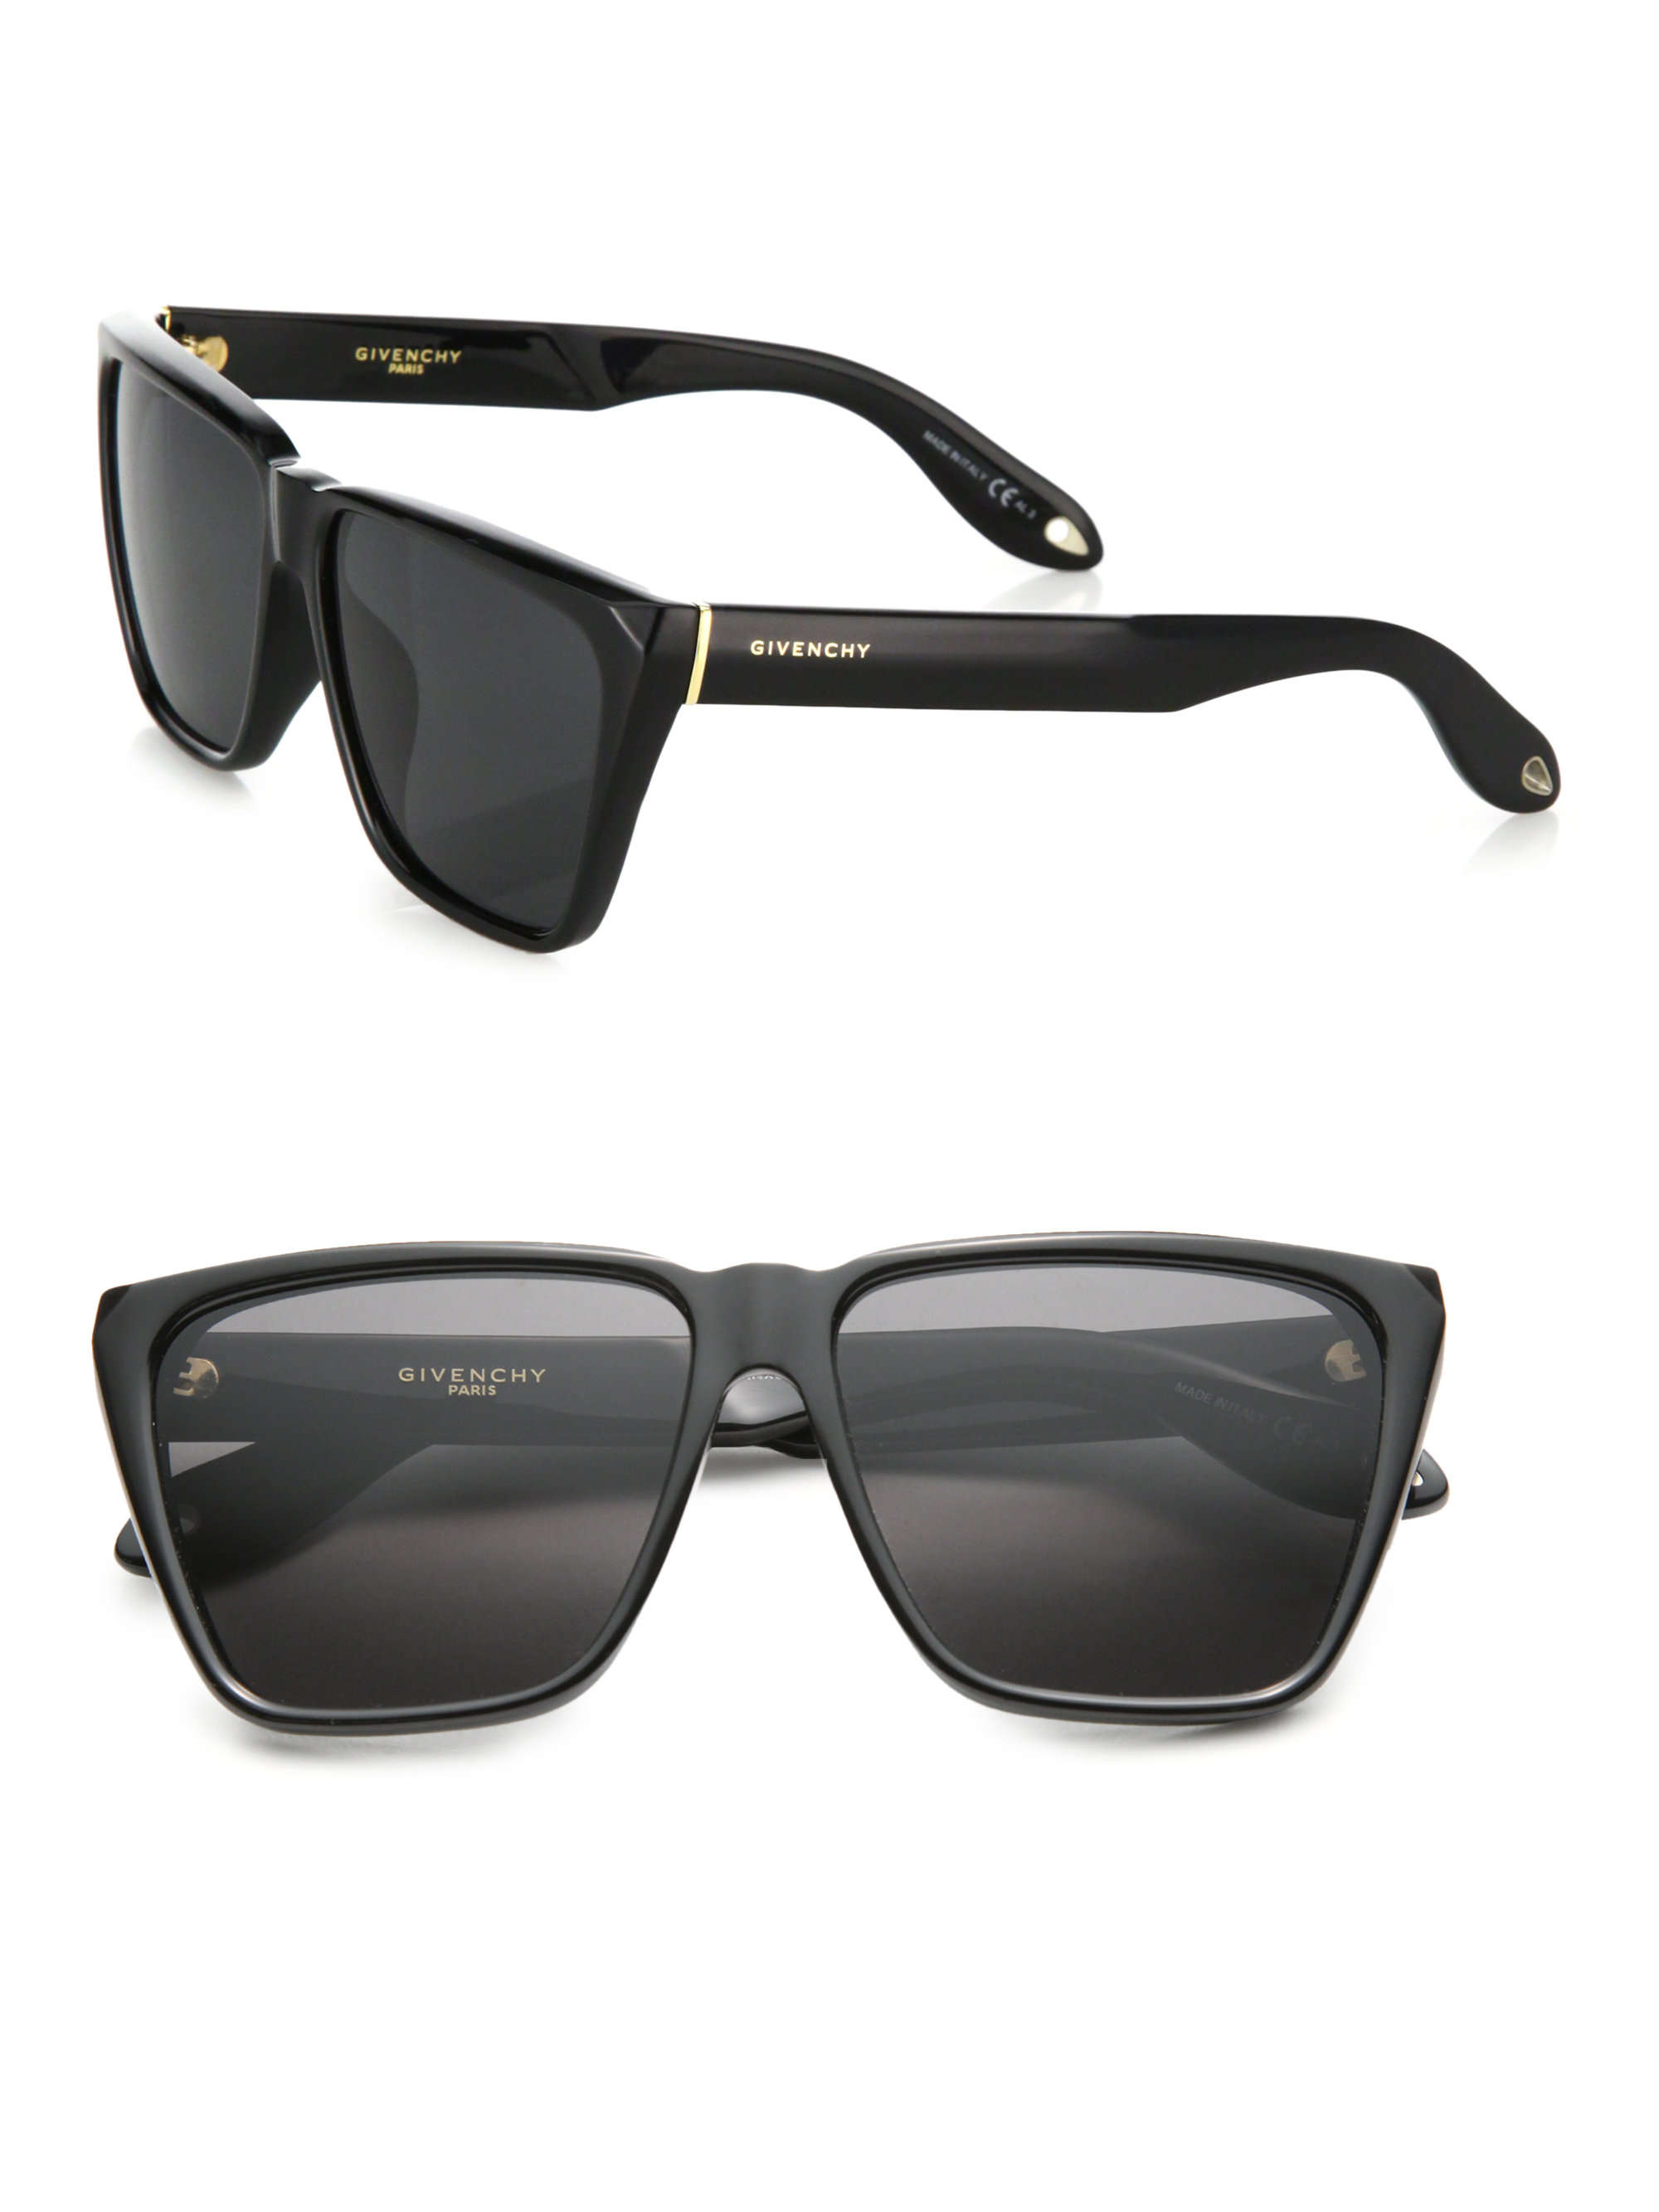 Givenchy 55mm Acetate Angular Sunglasses In Black Lyst